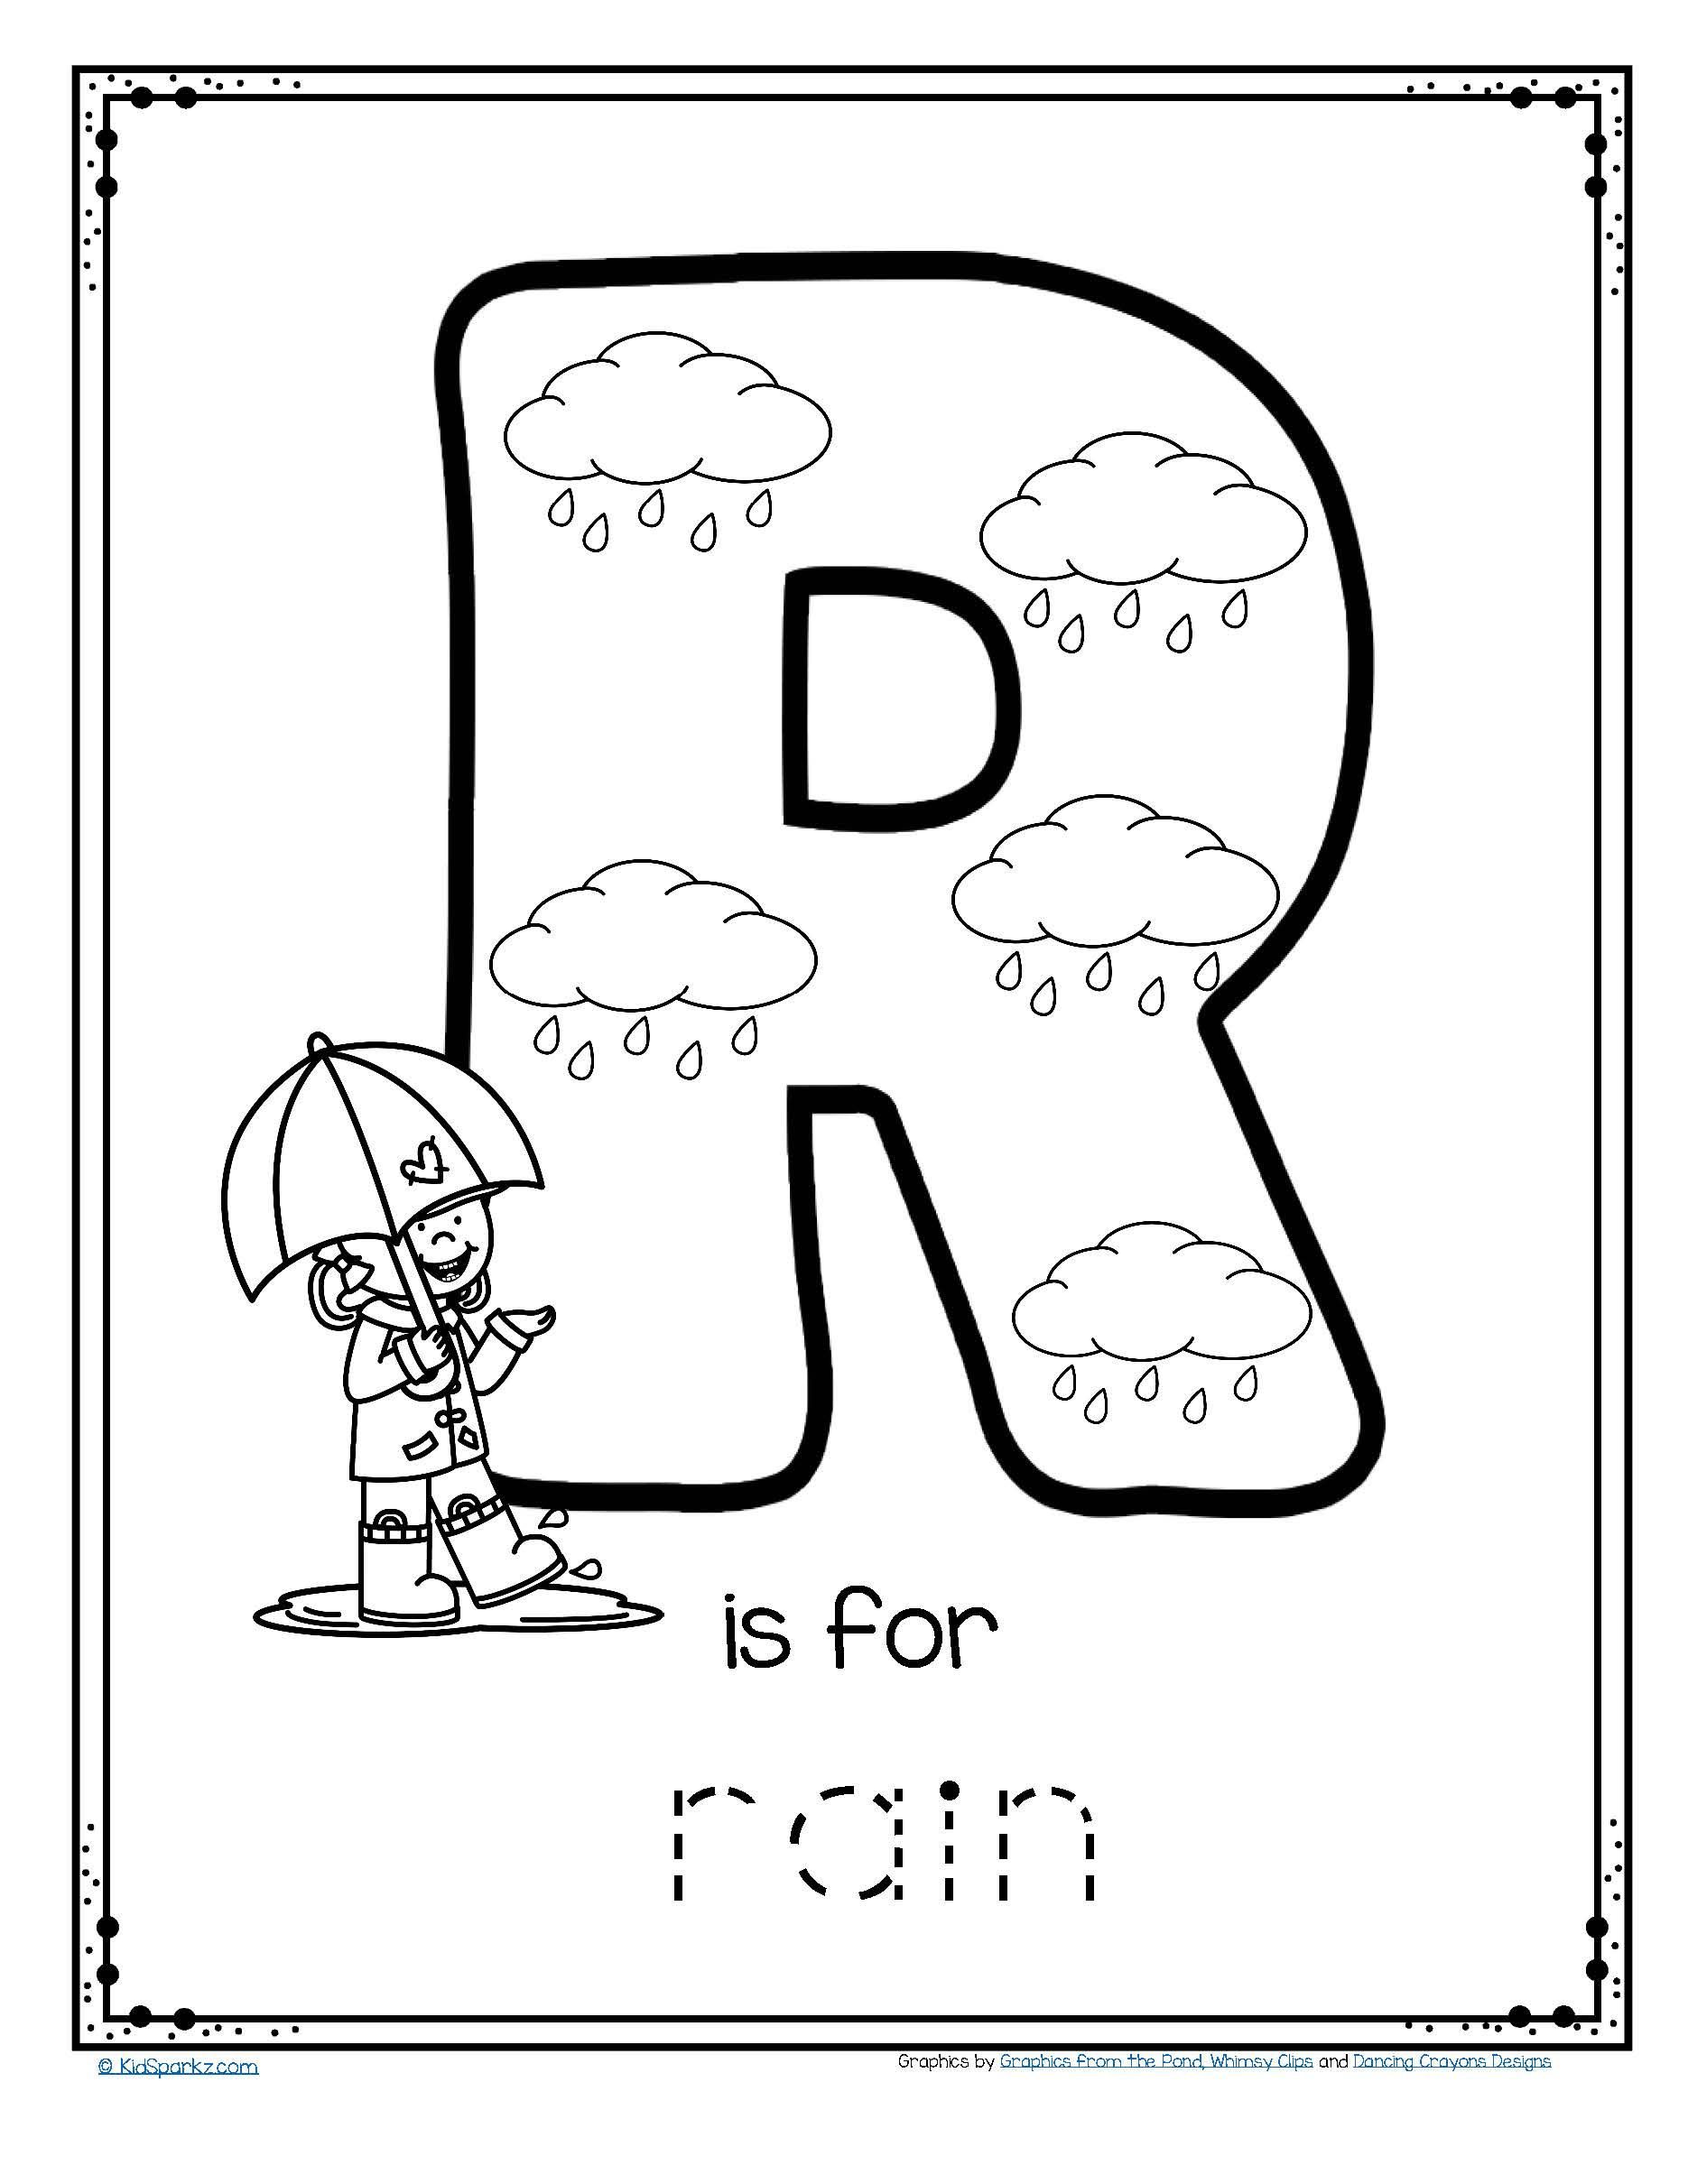 Free R Is For Rain Alphabet Trace And Color Printable Alphabet Preschoolactivities